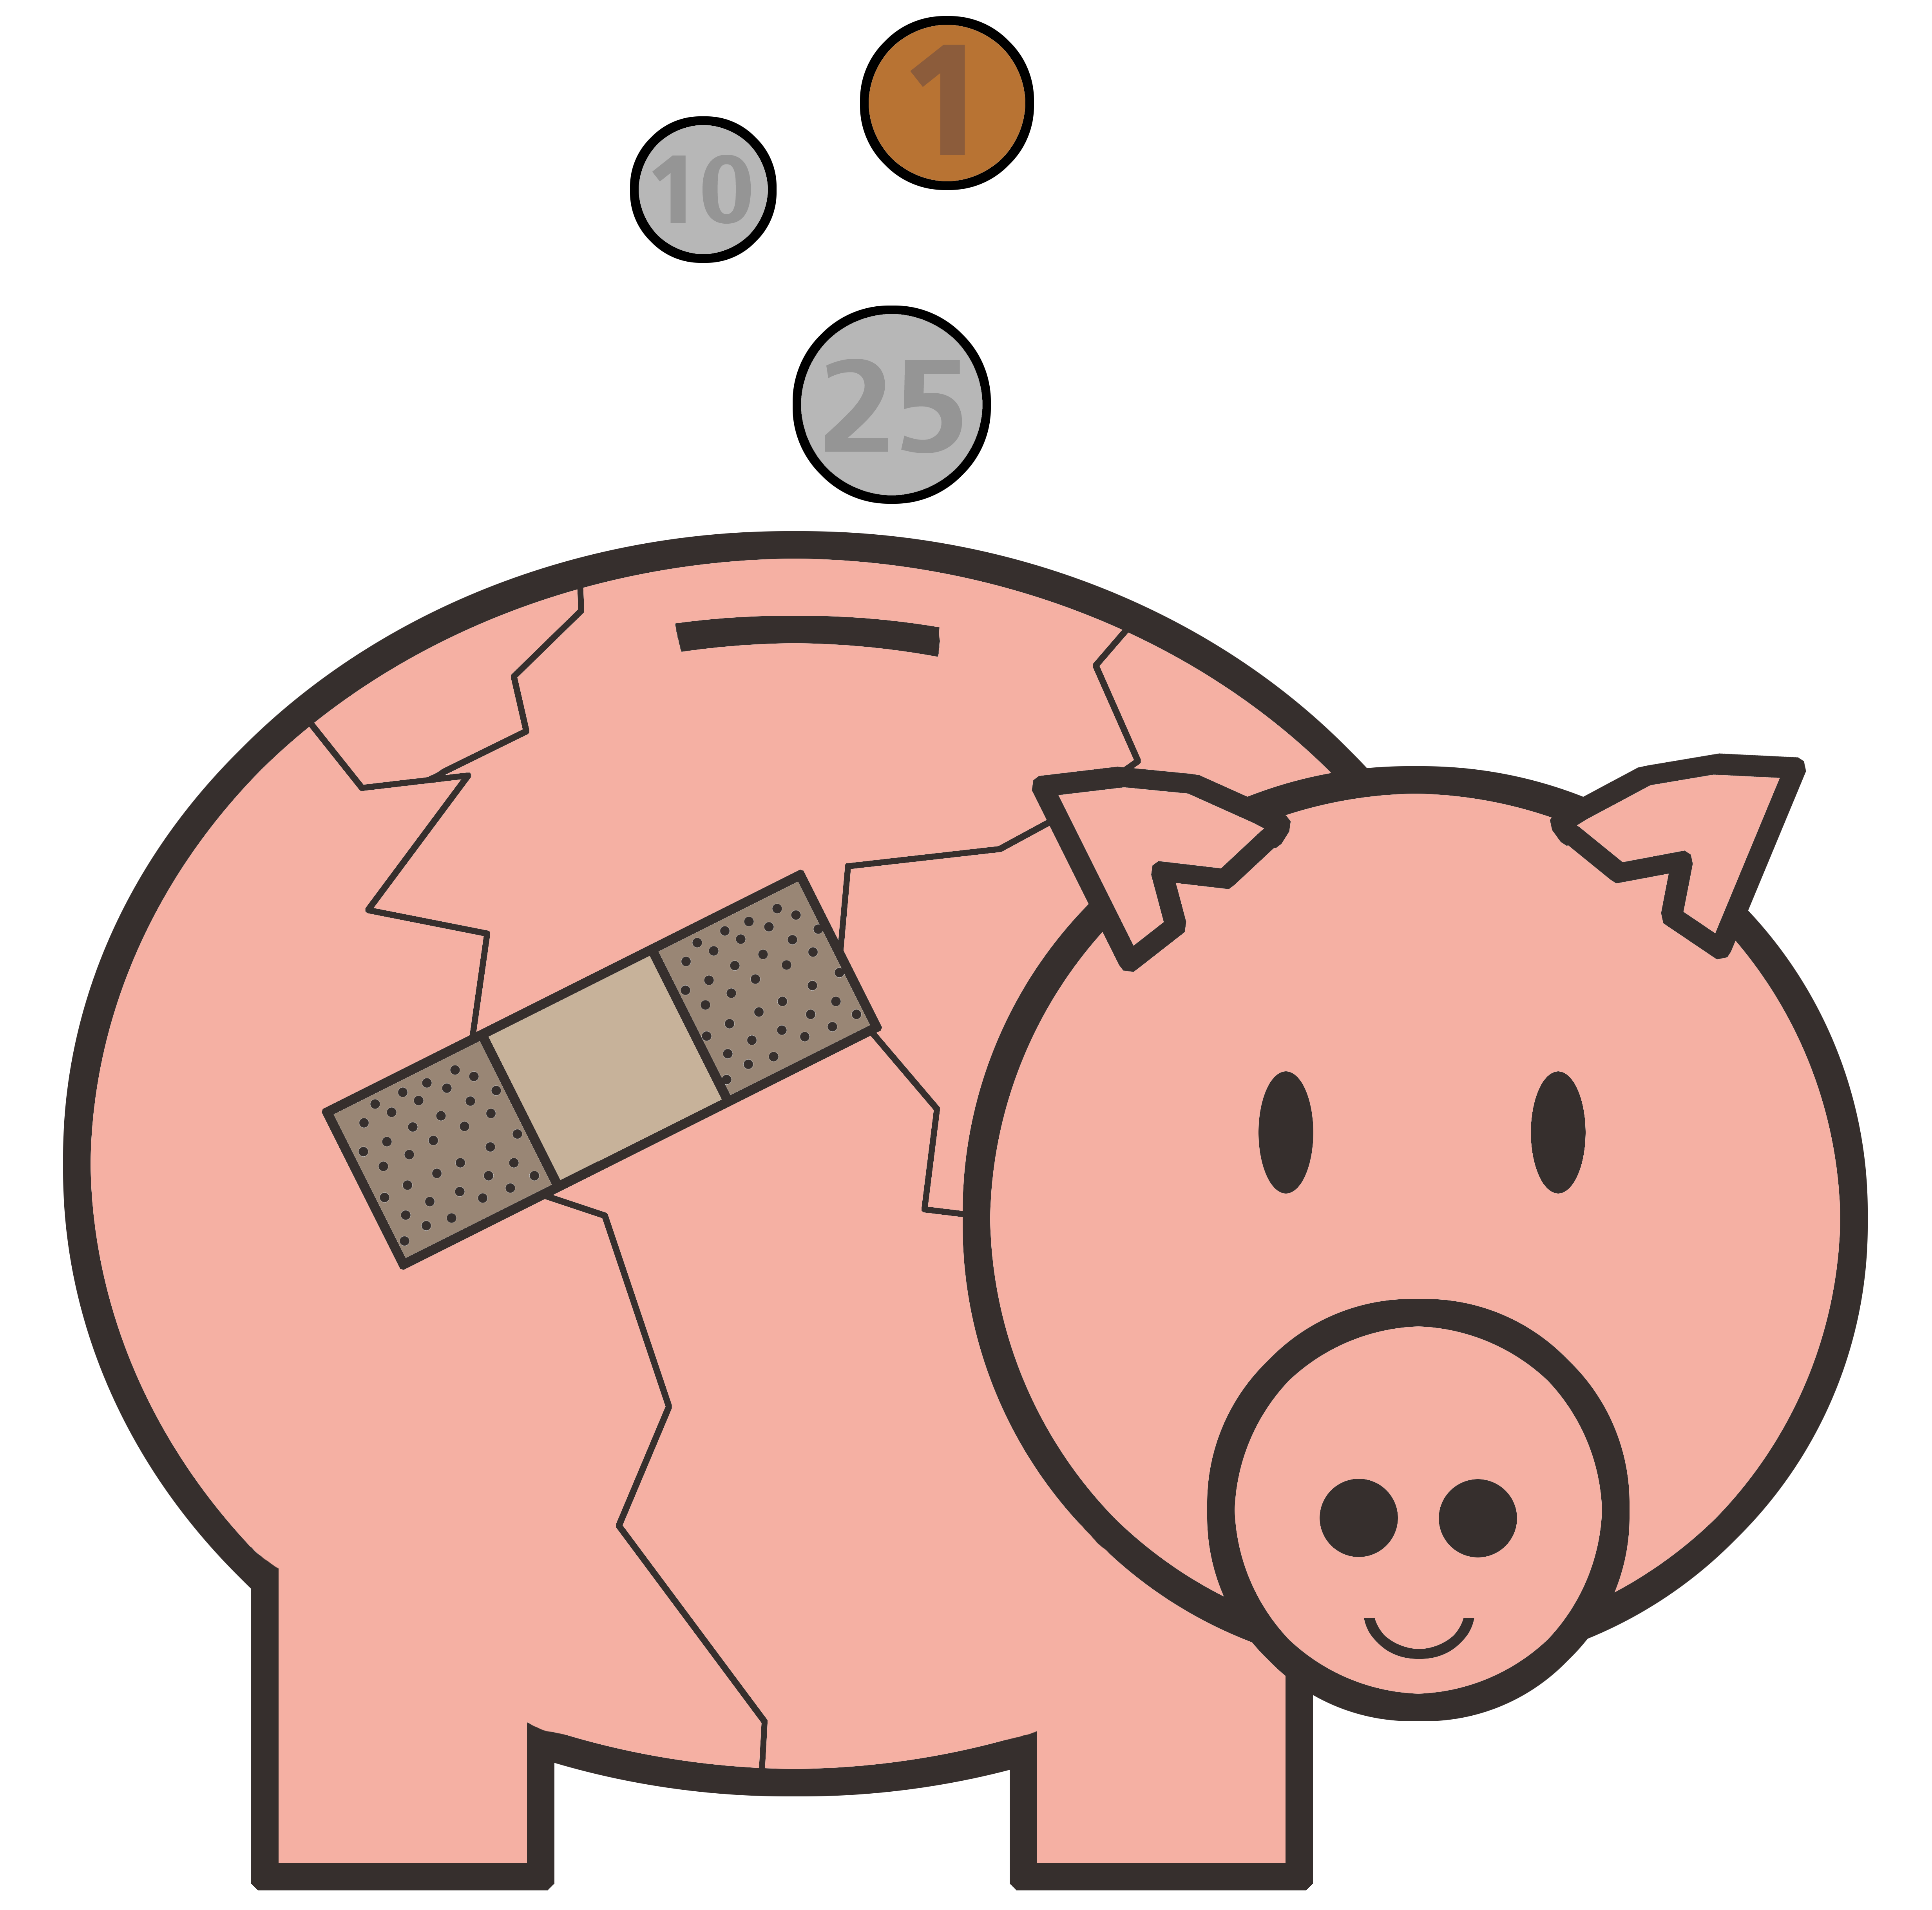 Piggy bank clipart kids image transparent library Mending the Piggy Bank image transparent library